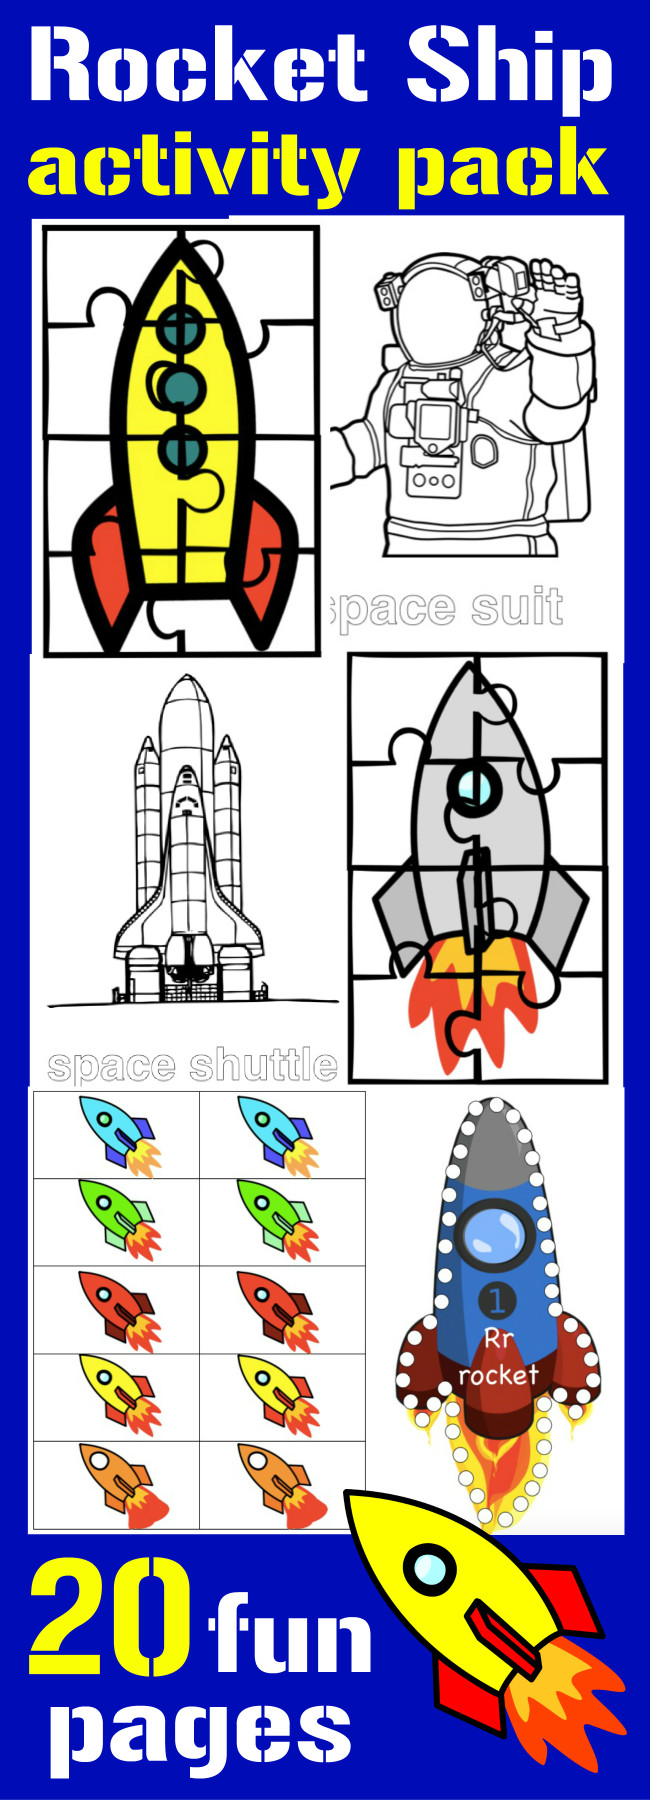 Rocket Ship Activity Pack from HappyandBlessedHome.com